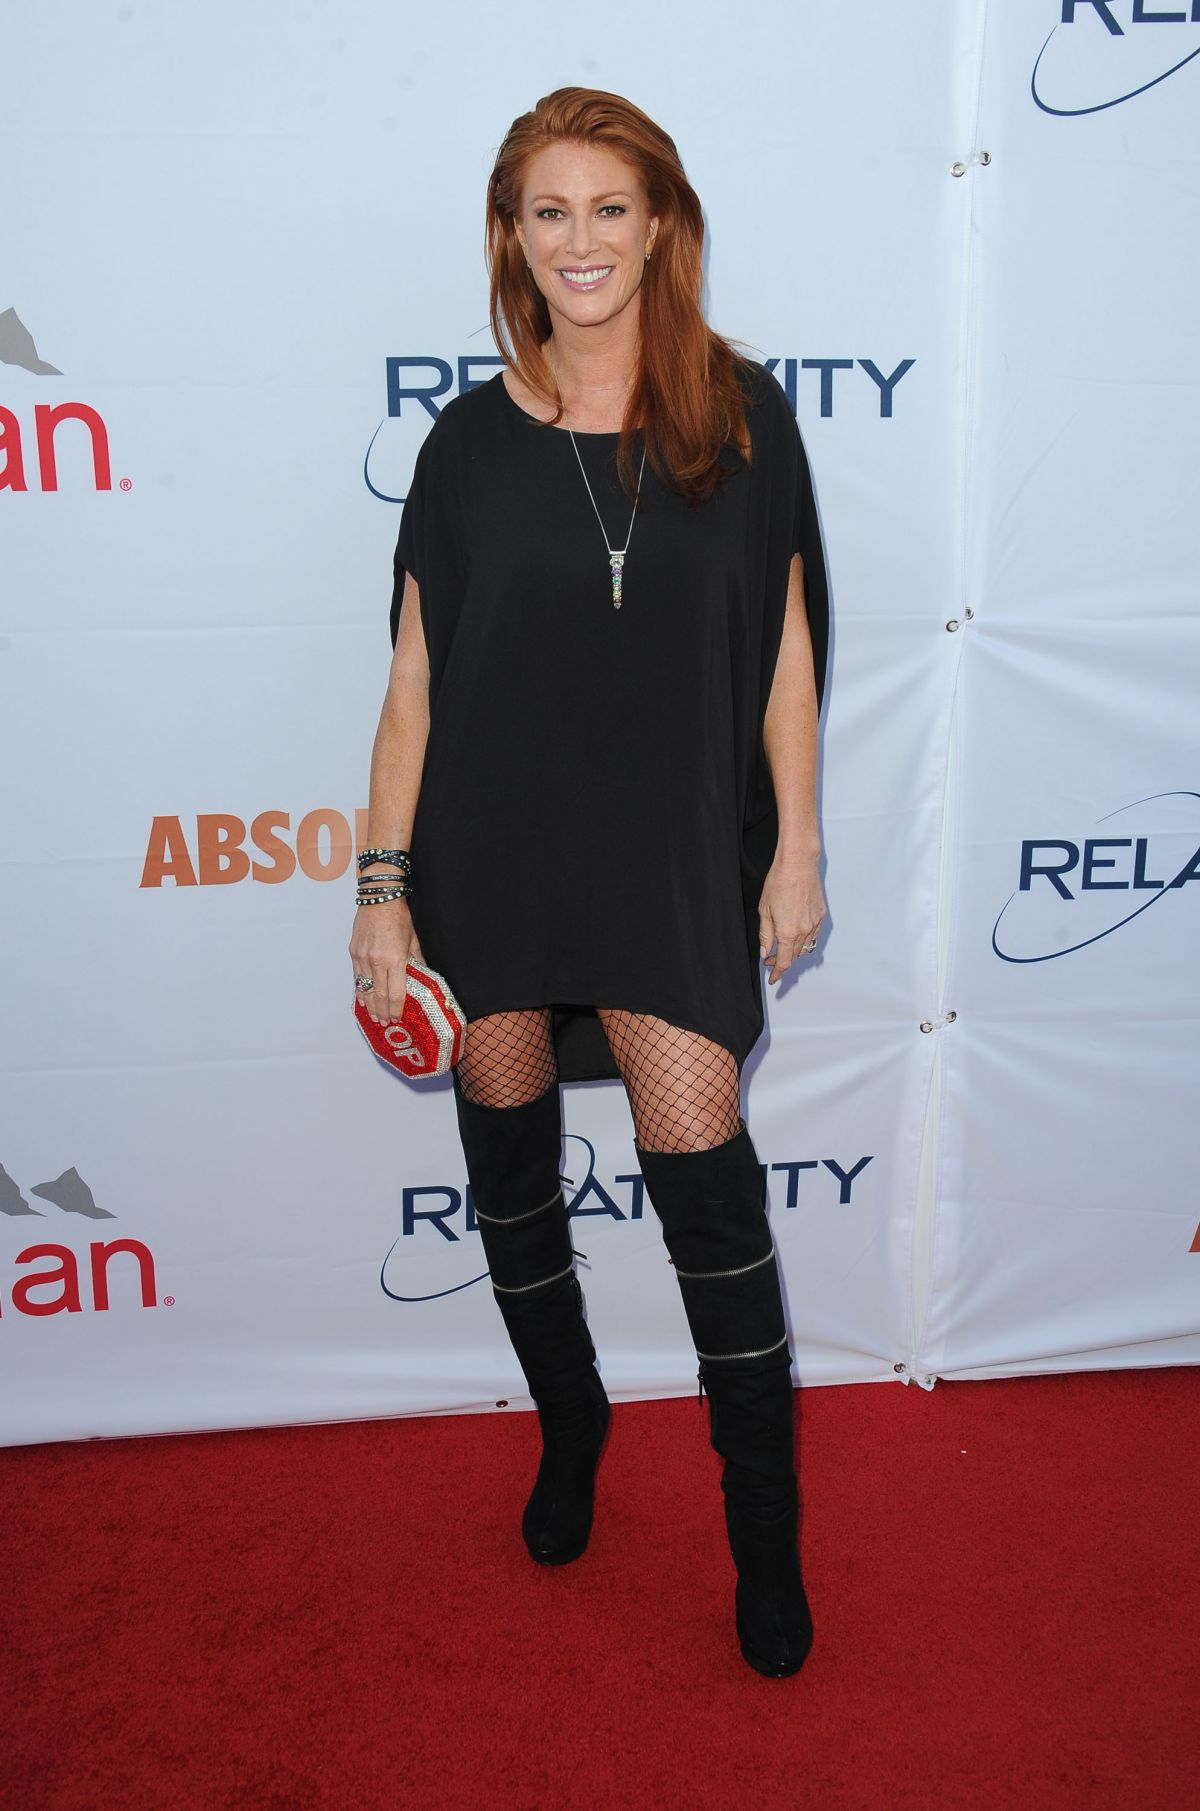 angie everhart 2015angie everhart фото, angie everhart cancer, angie everhart photo gallery, angie everhart movie list, angie everhart, angie everhart wiki, angie everhart instagram, angie everhart joe pesci, angie everhart 2015, angie everhart howard stern, angie everhart sylvester stallone, angie everhart movie